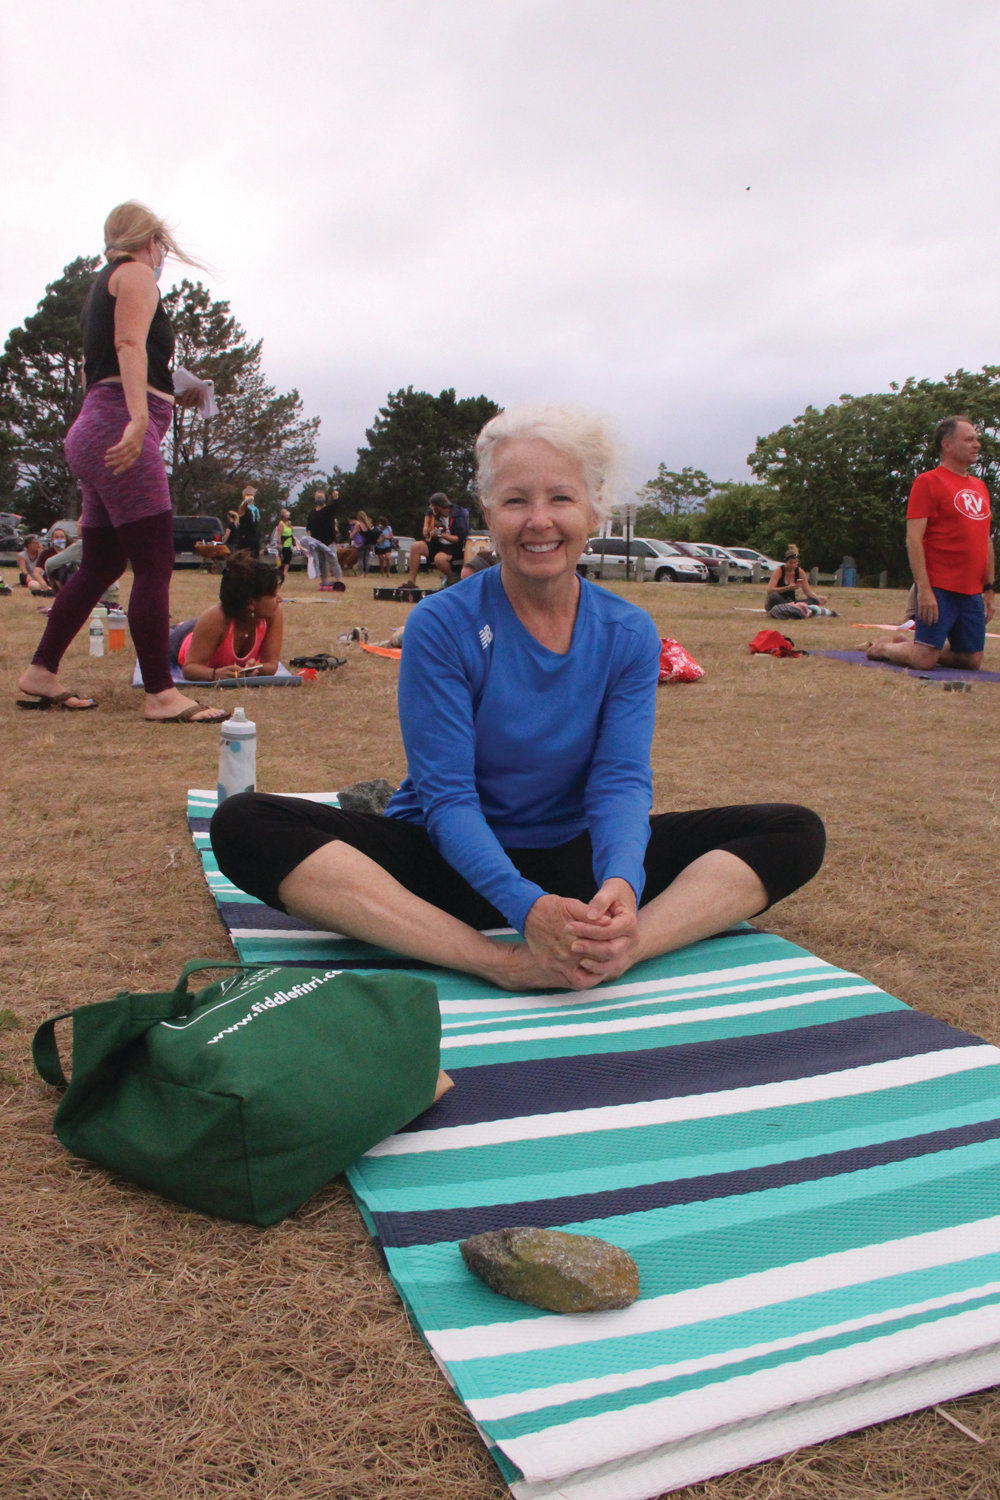 DISCOVERING YOGA AT CONIMICUT: Diane Crosby was a first time participant of Yoga at The Point.